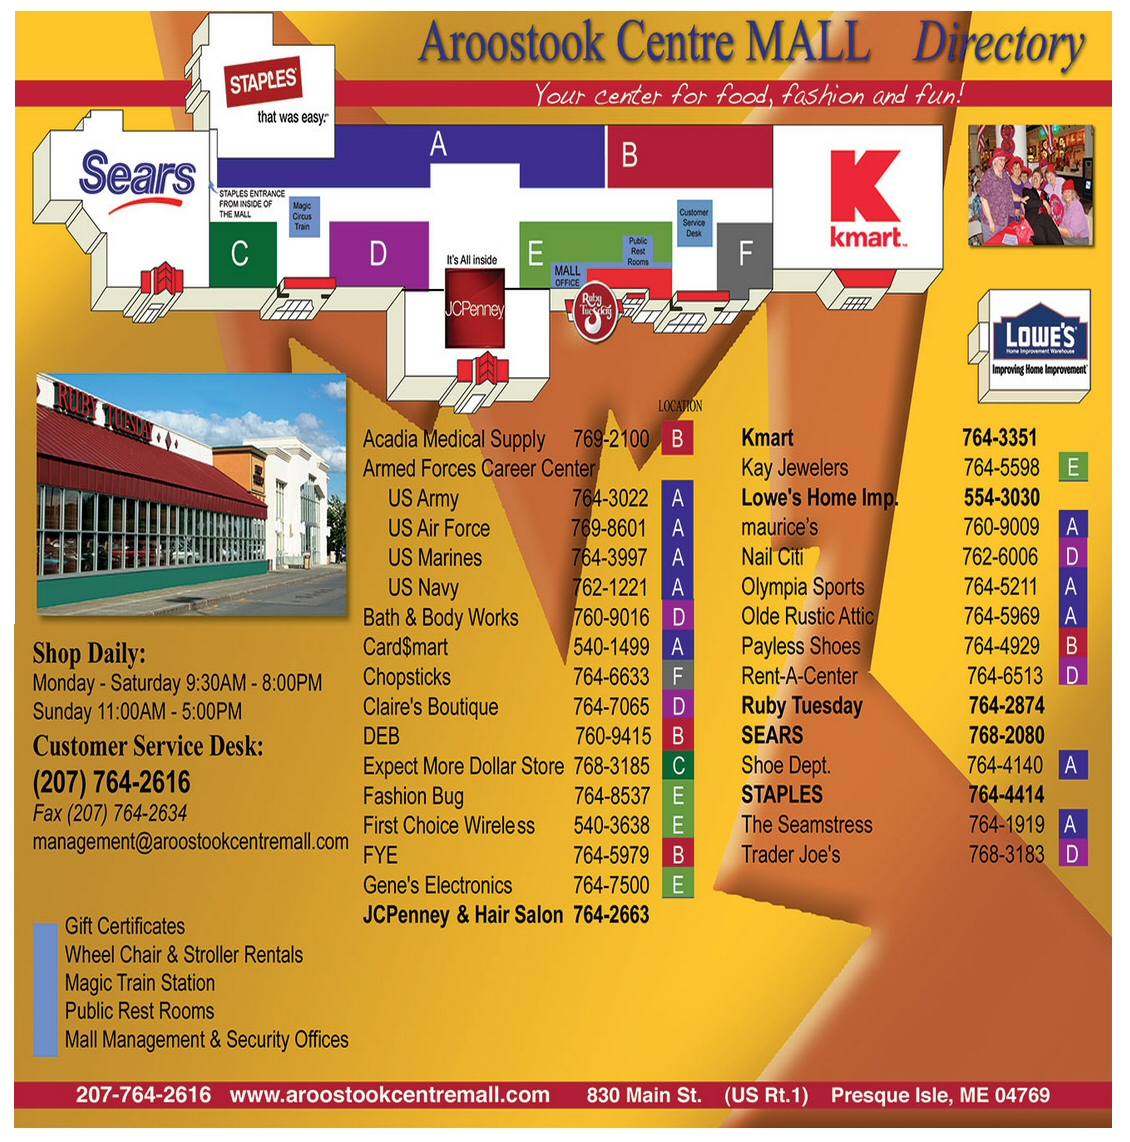 Map of Aroostook Centre Mall